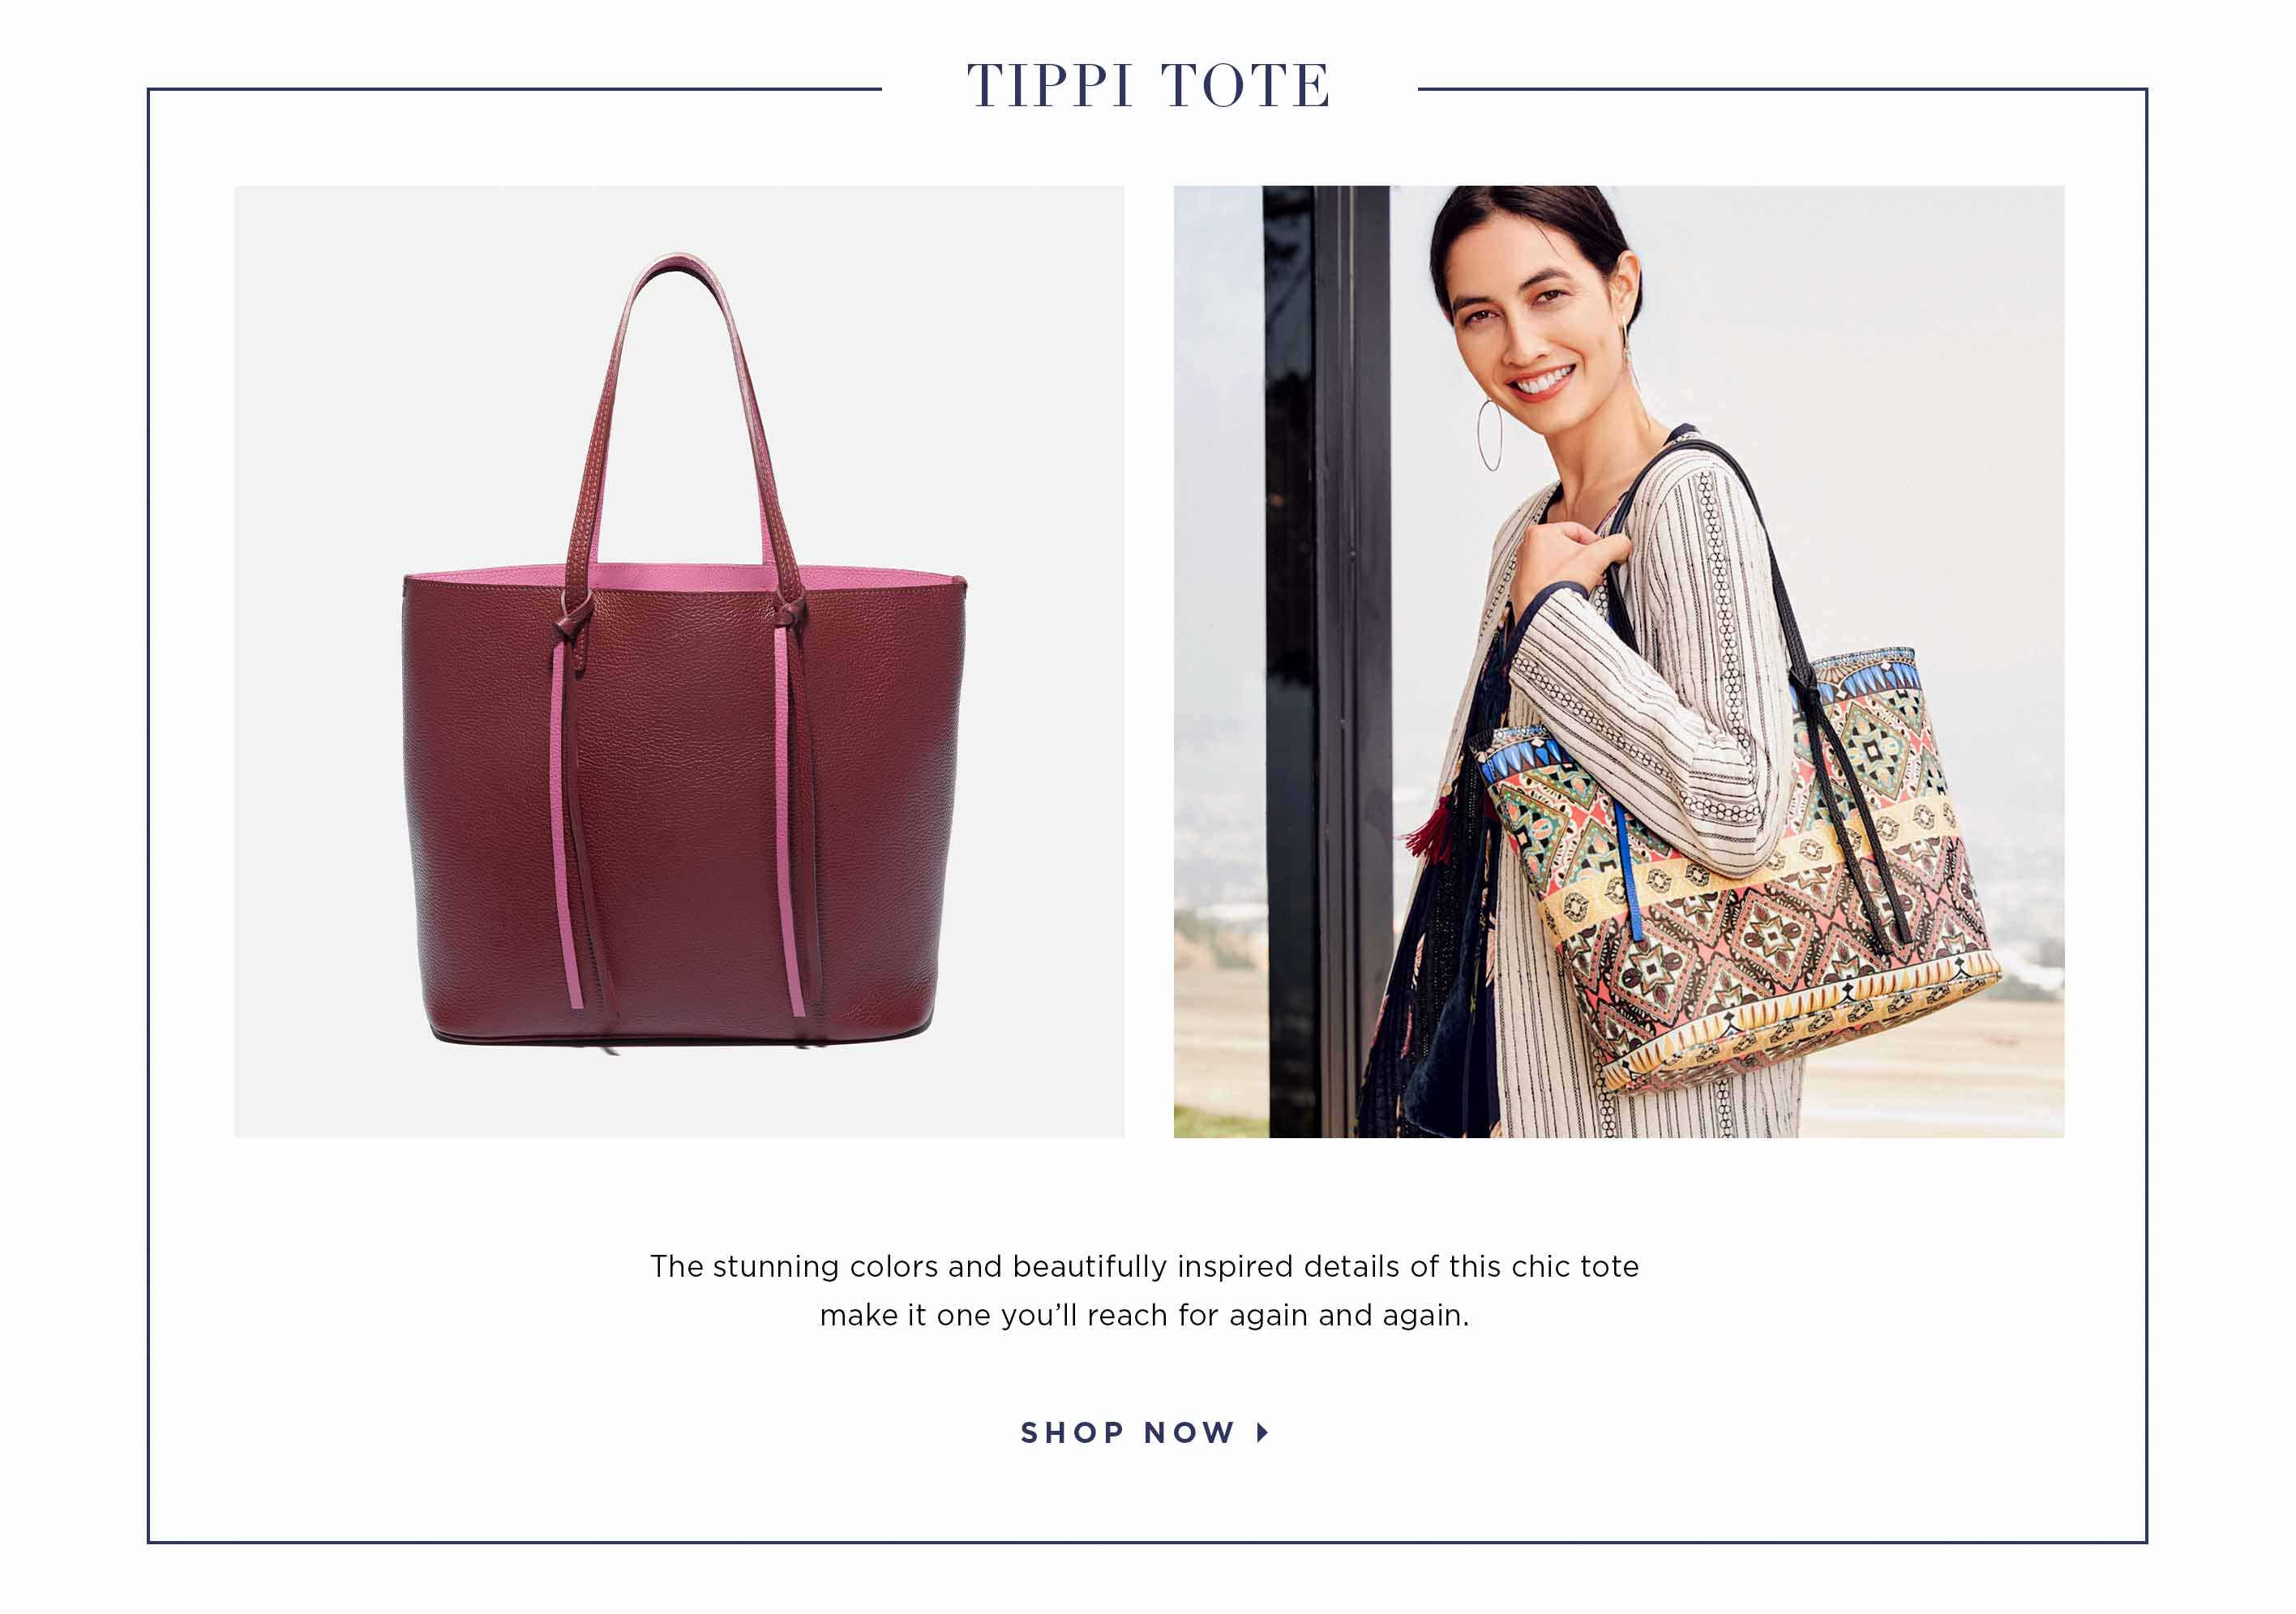 Tippi Tote - The stunning colors and beautifully inspired details of this chic tote make it one you'll reach for again and again. Shop now.